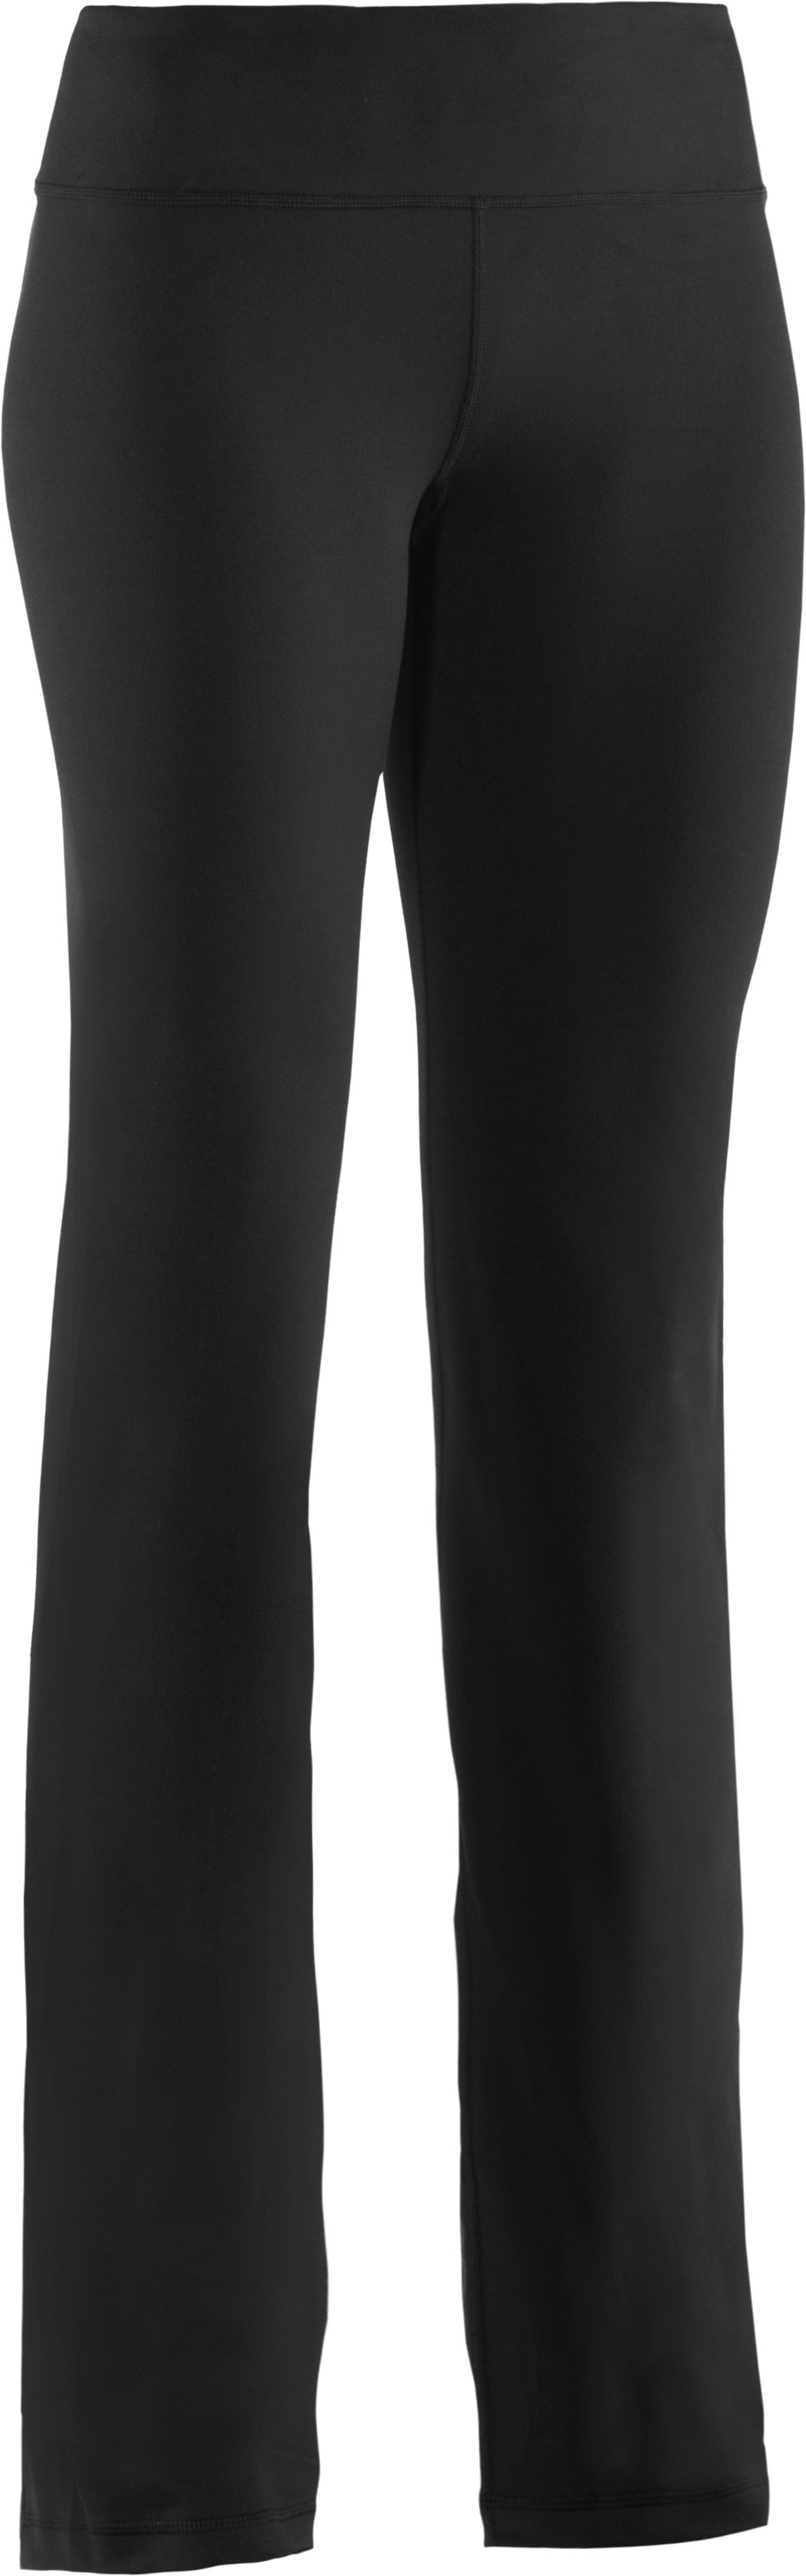 "Women's UA Perfect Pant - 31.5"", Black"